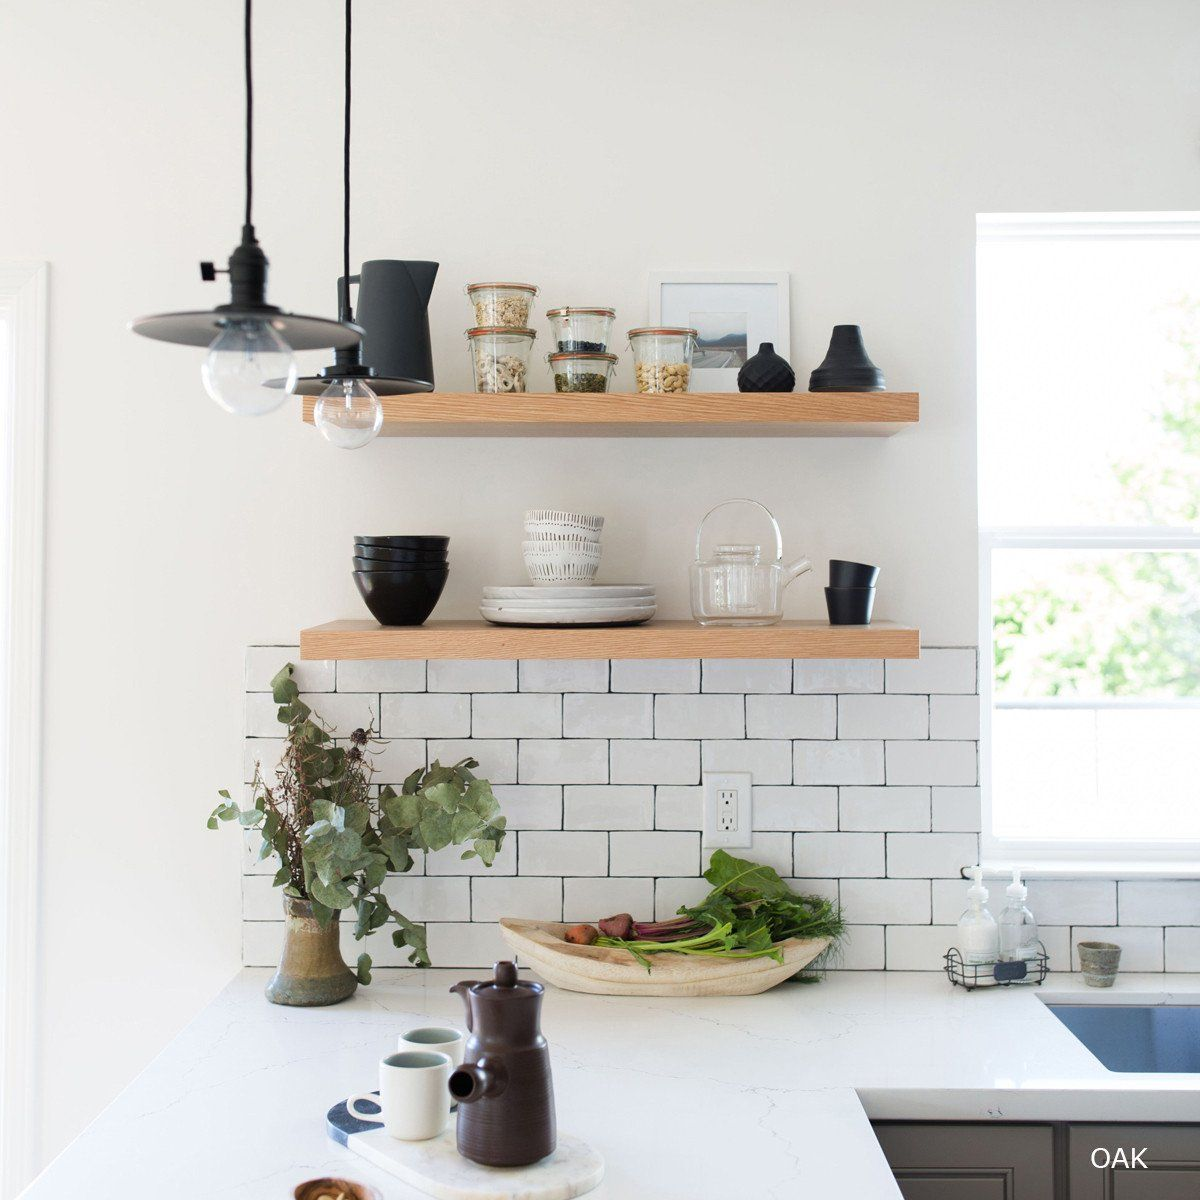 floating shelves oak loft kitchen wall shelving that delivers custom look bunnings chrome entrance coat hanger white cabinets steel racks shoe rack and wood bathroom vanity ideas